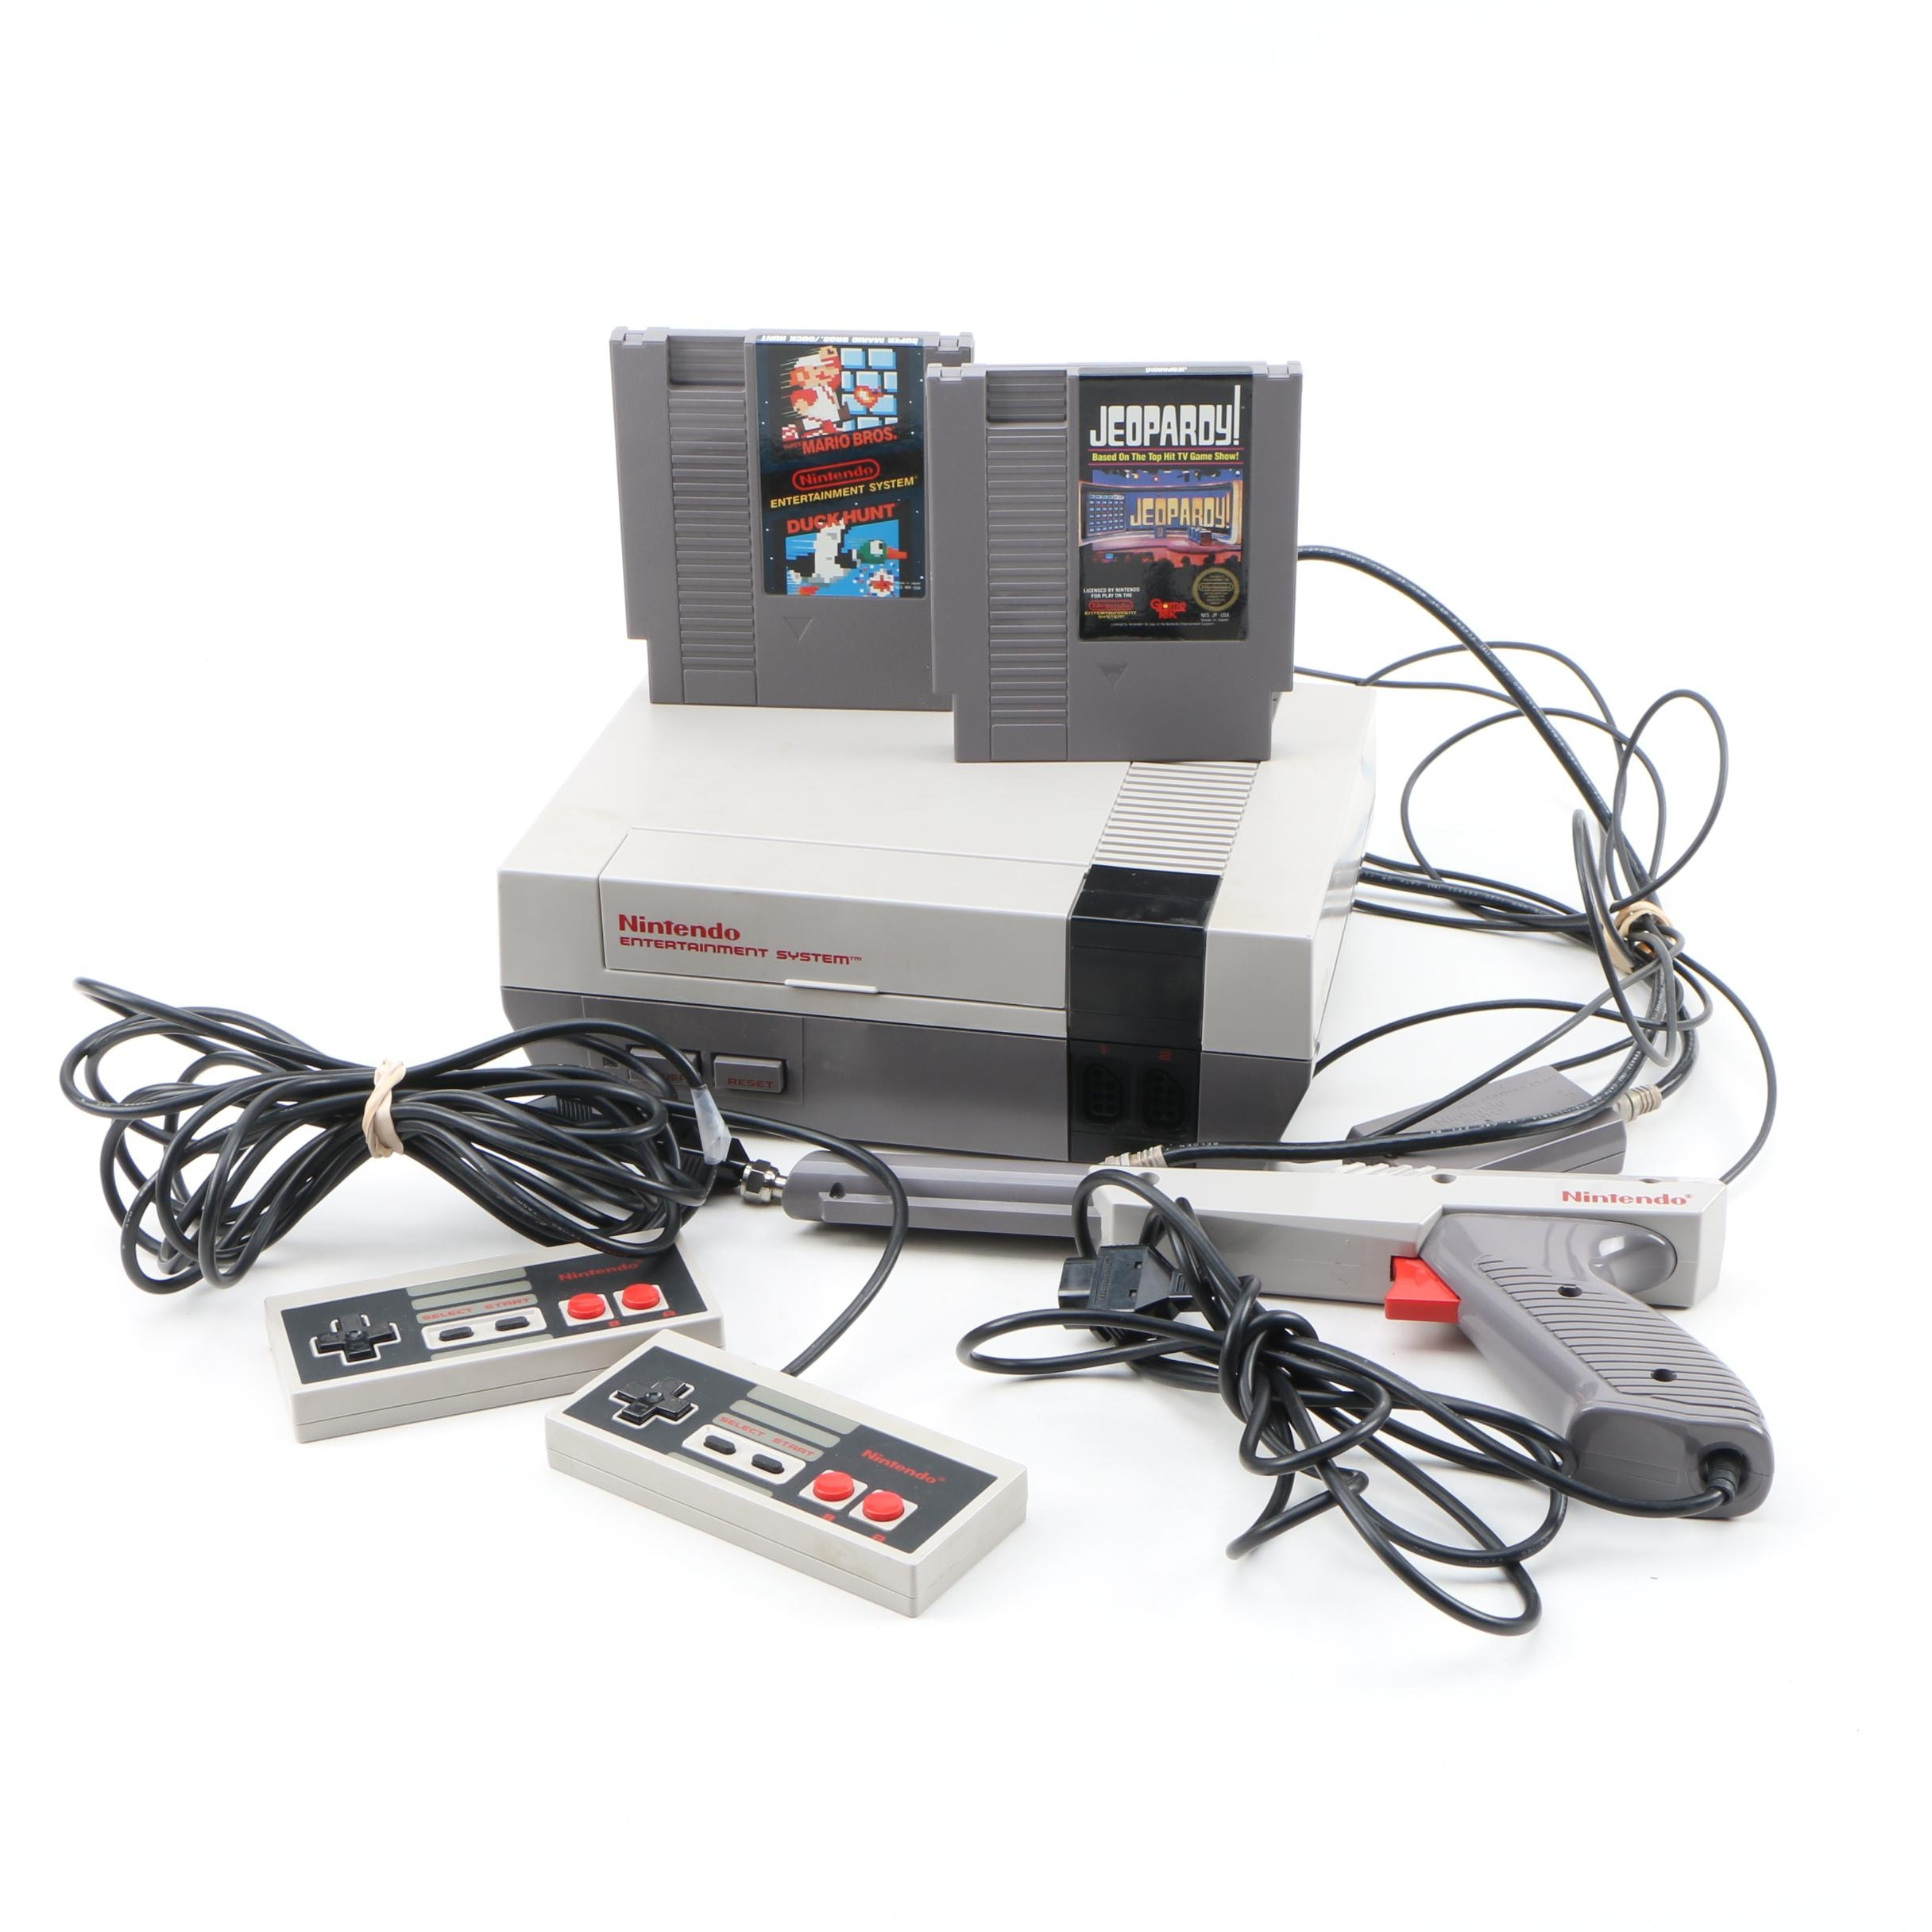 Nintendo Entertainment System with Controllers and Games